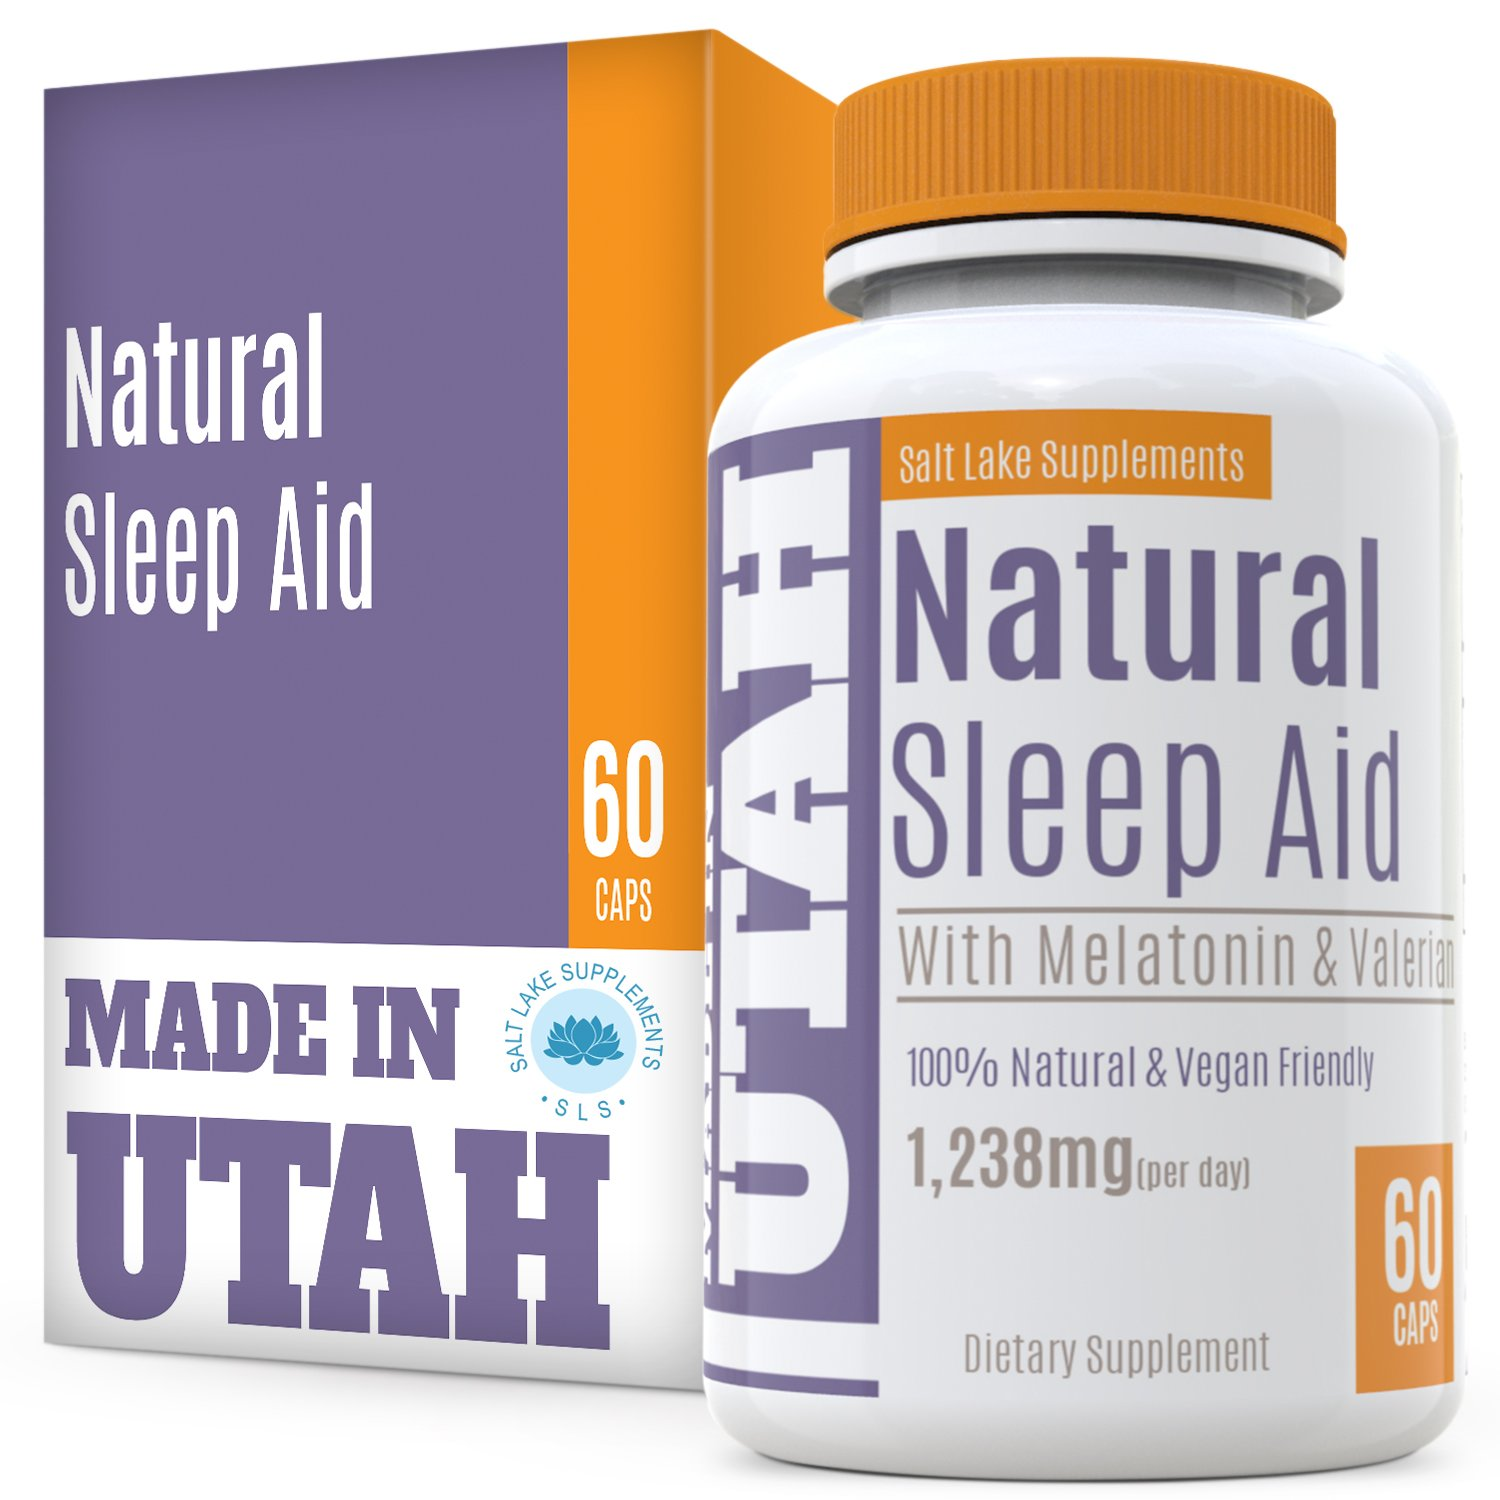 Natural Sleep Aid Is An All-Natural Sleep Formula That Combines Melatonin, Valerian Root And Non-Addictive Extracts Into the Best 100% Safe Sleeping Pill To Get a Full Night's Rest